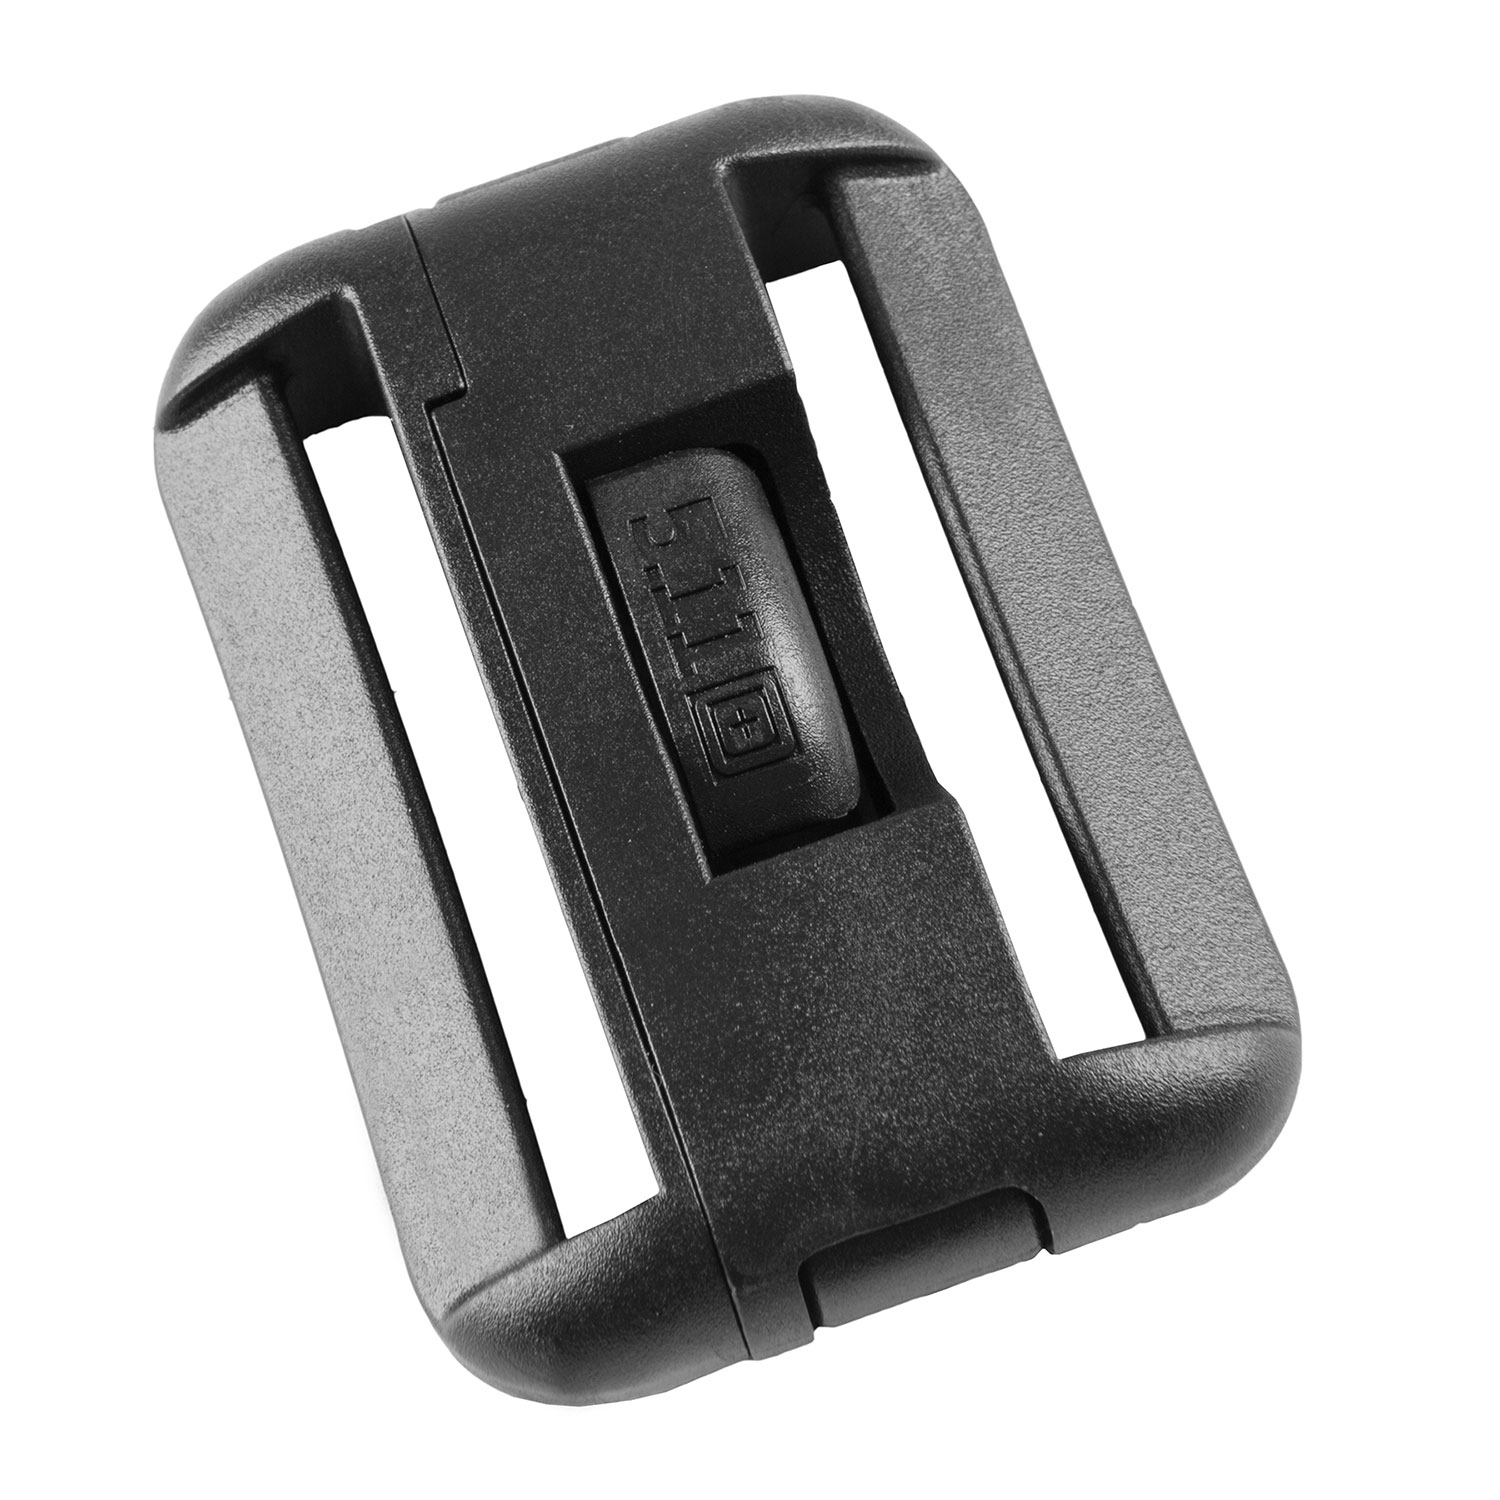 5.11 Tactical Sierra Bravo Buckle